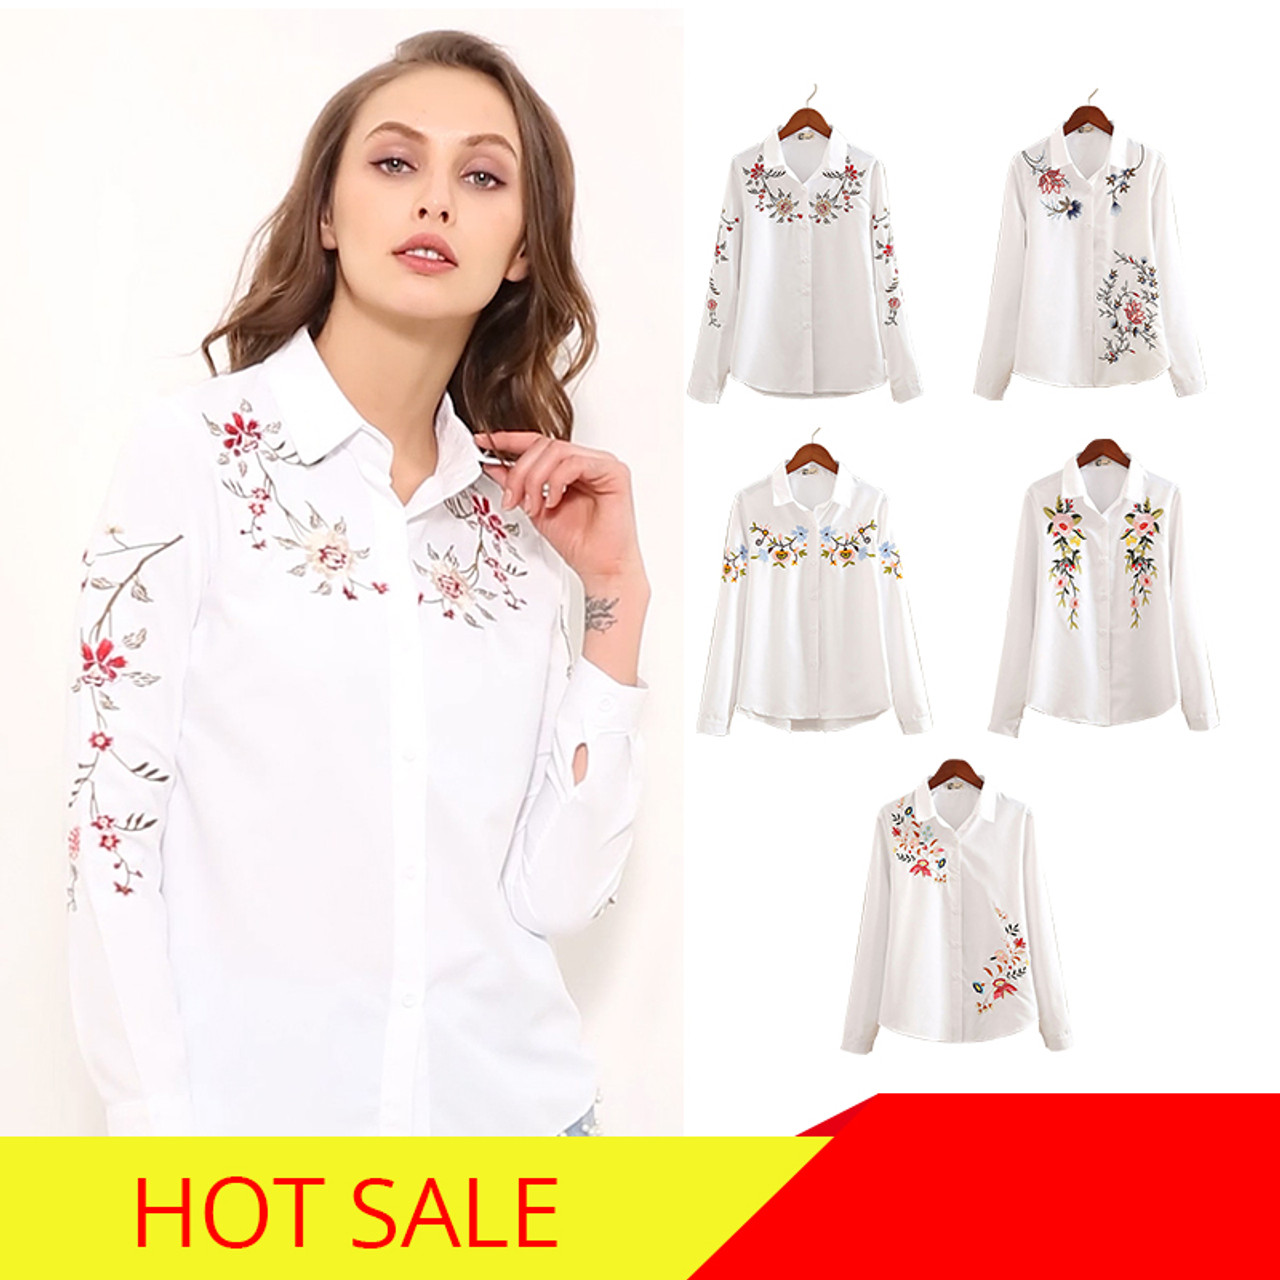 6c03ba284f2 ... nvyou gou 2018 Floral Embroidered Blouse Shirt Women Slim White Tops  Long Sleeve Blouses Woman Office ...